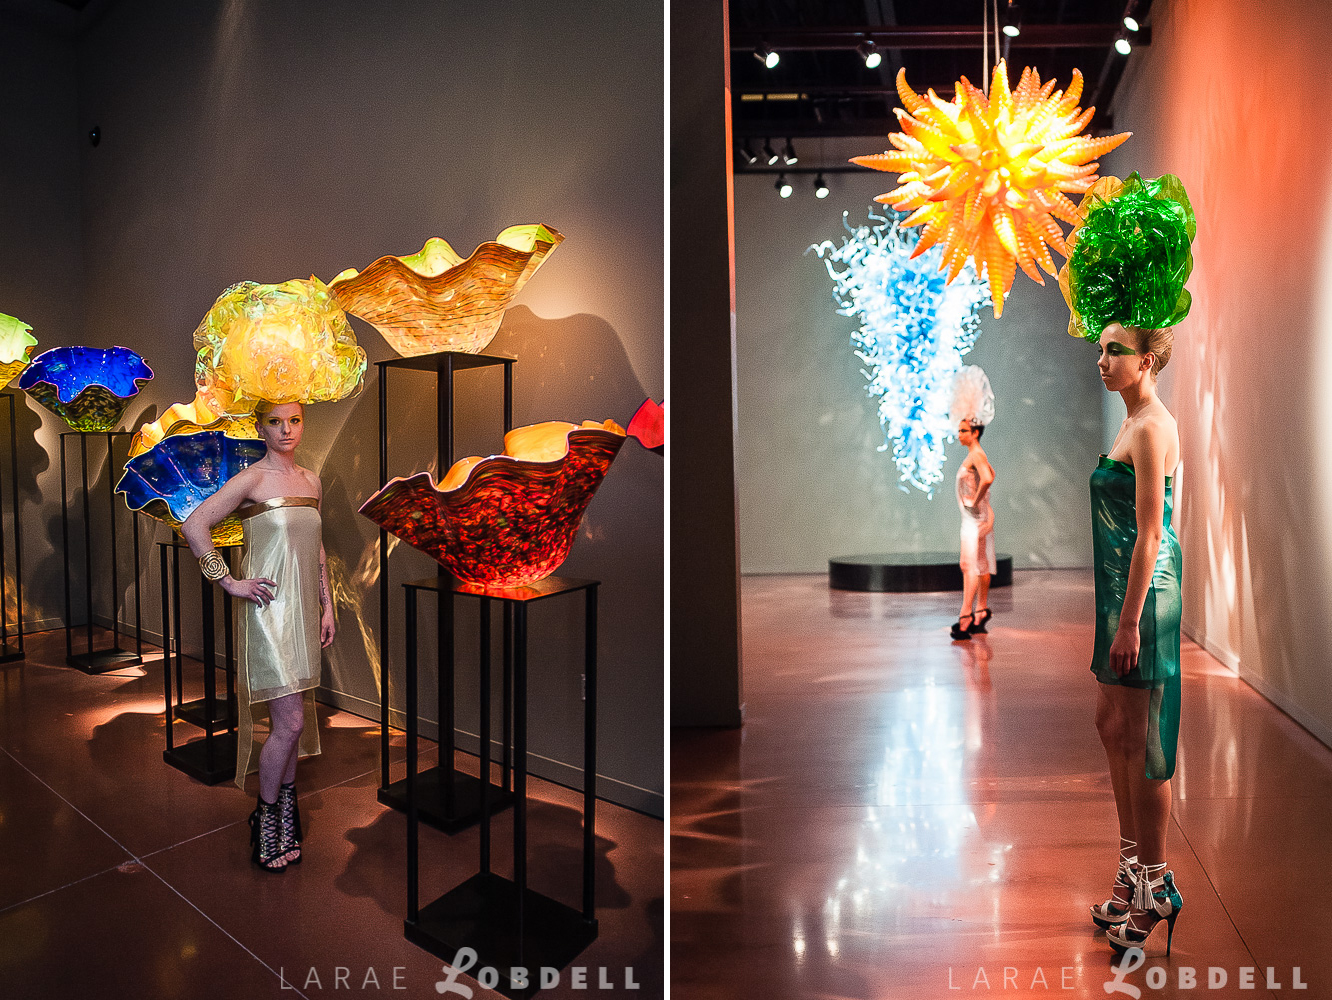 Models in glass-like wraps and head dresses stand by the glass art exhibits created by Dale Chihuly at the Chihuly Garden and Glass.